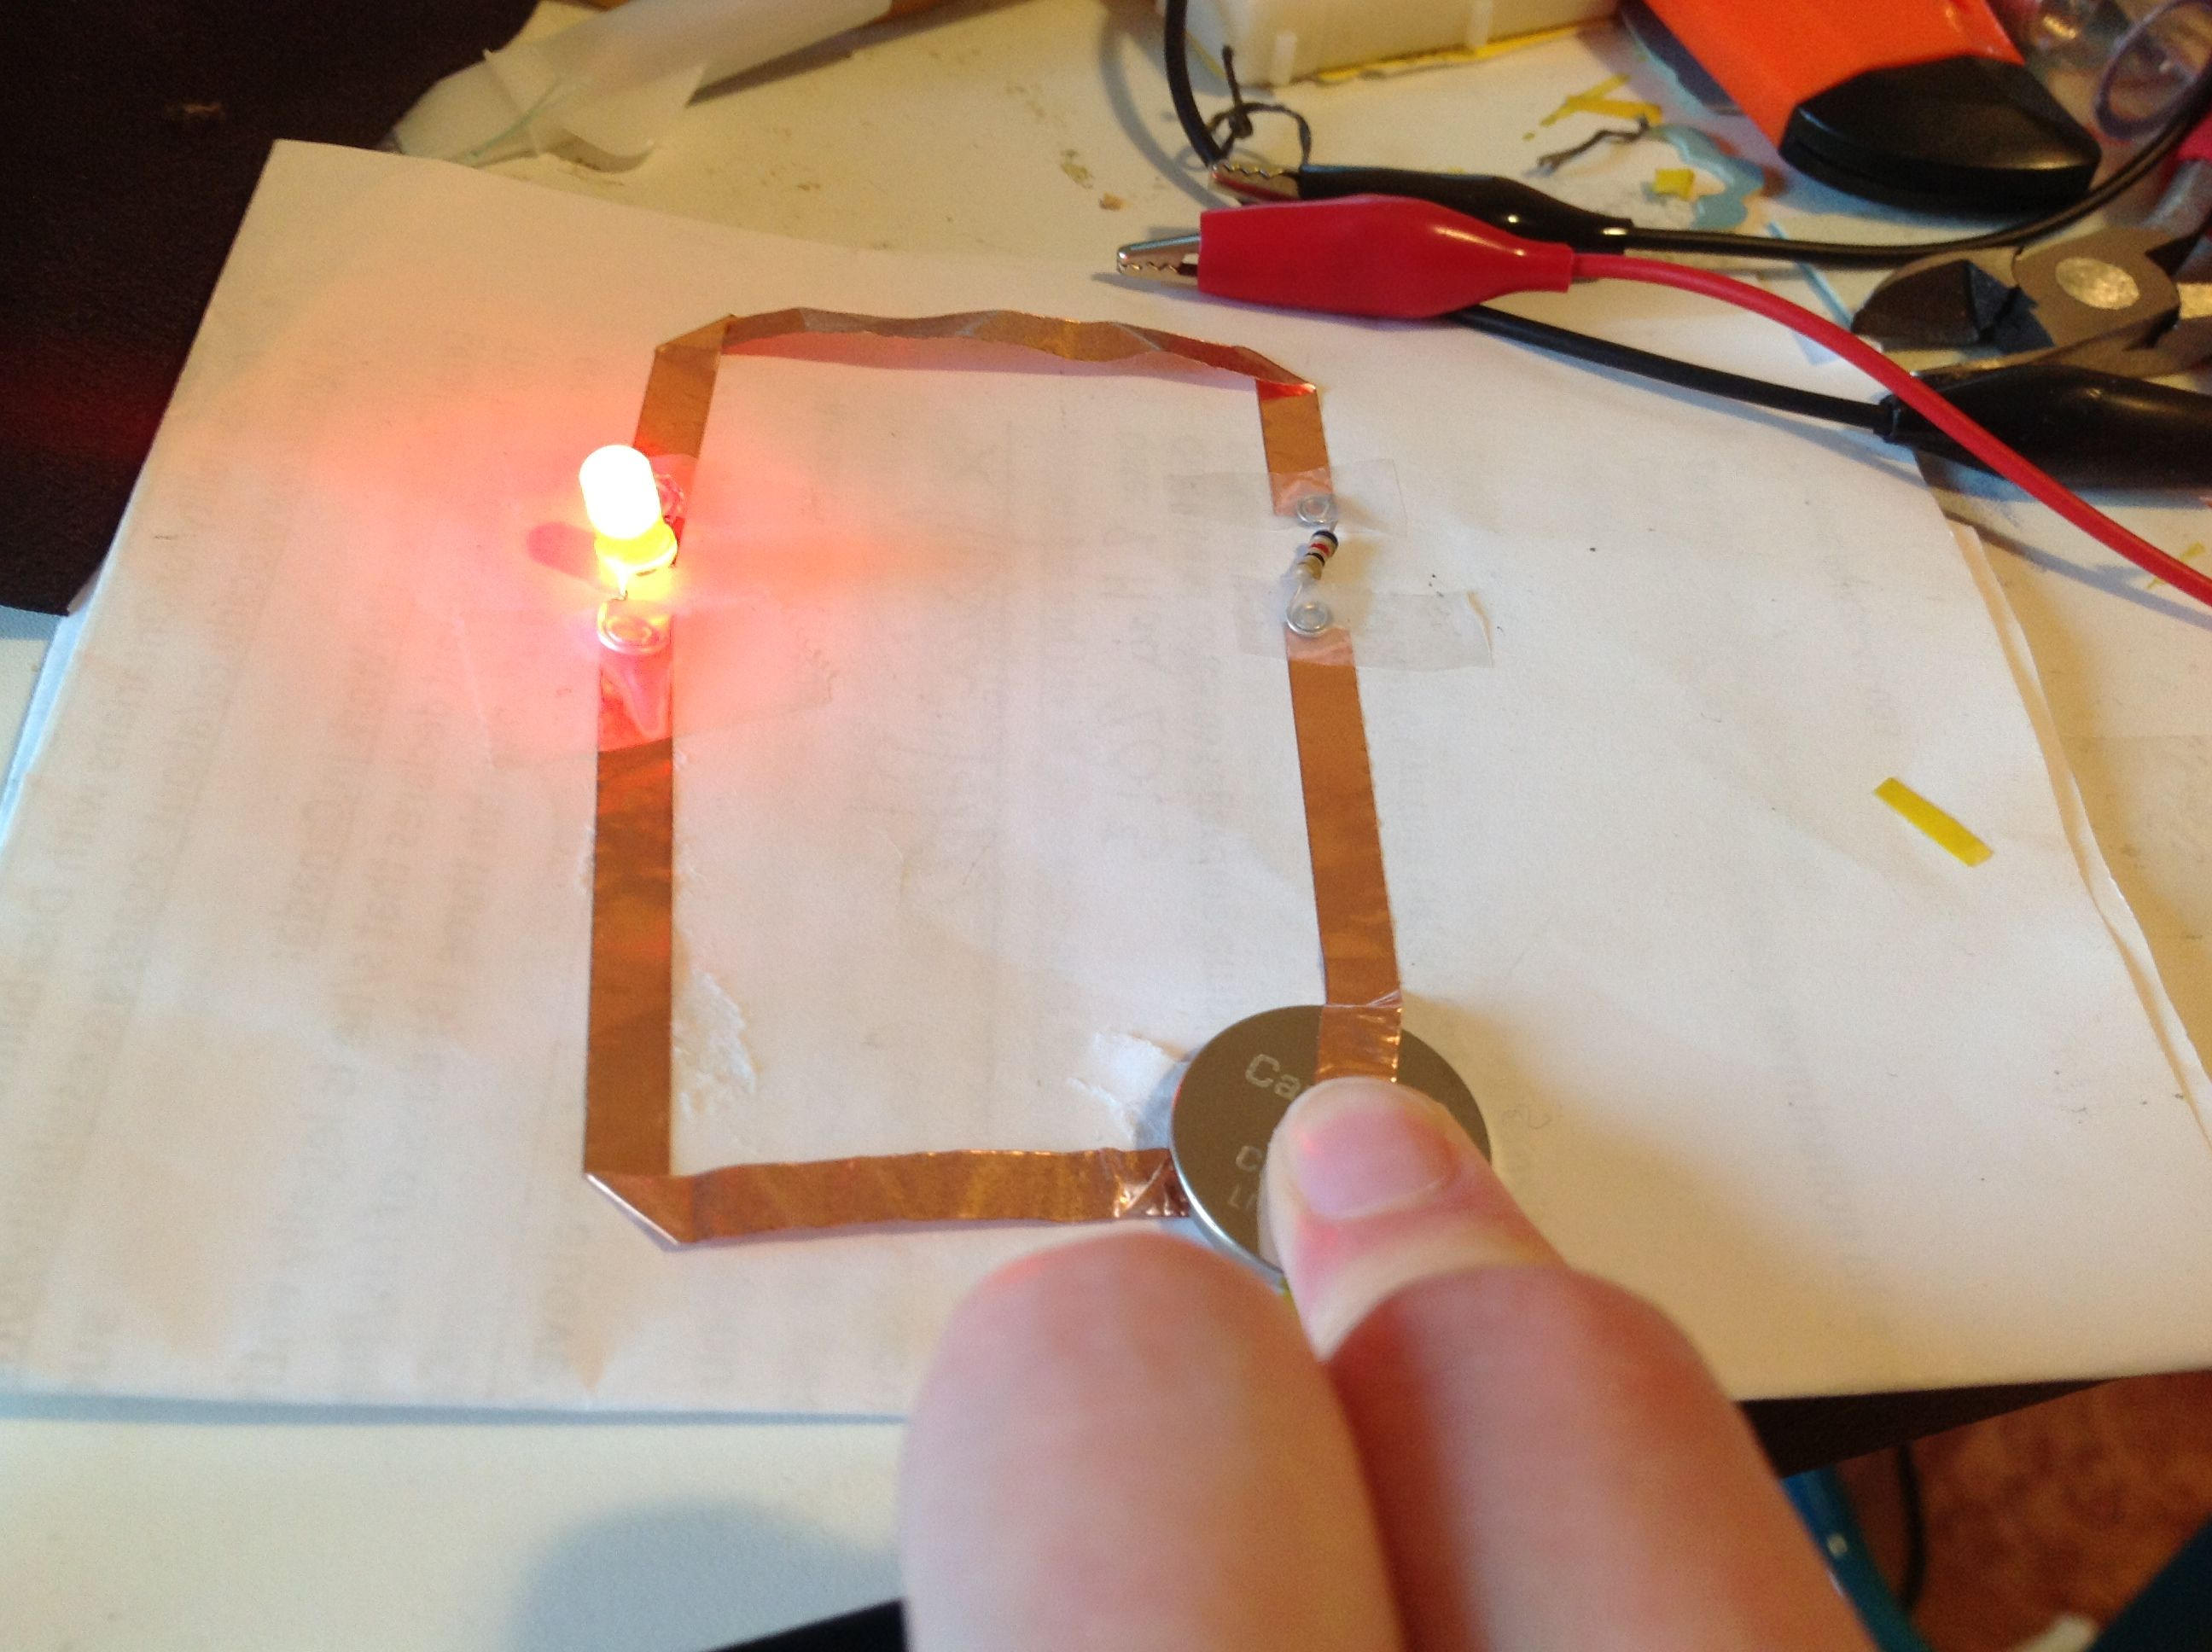 Copper Tape Circuit Google Search Arts Crafts Led Works Lighting Circuitsled Pcb Boardalumimun Buy